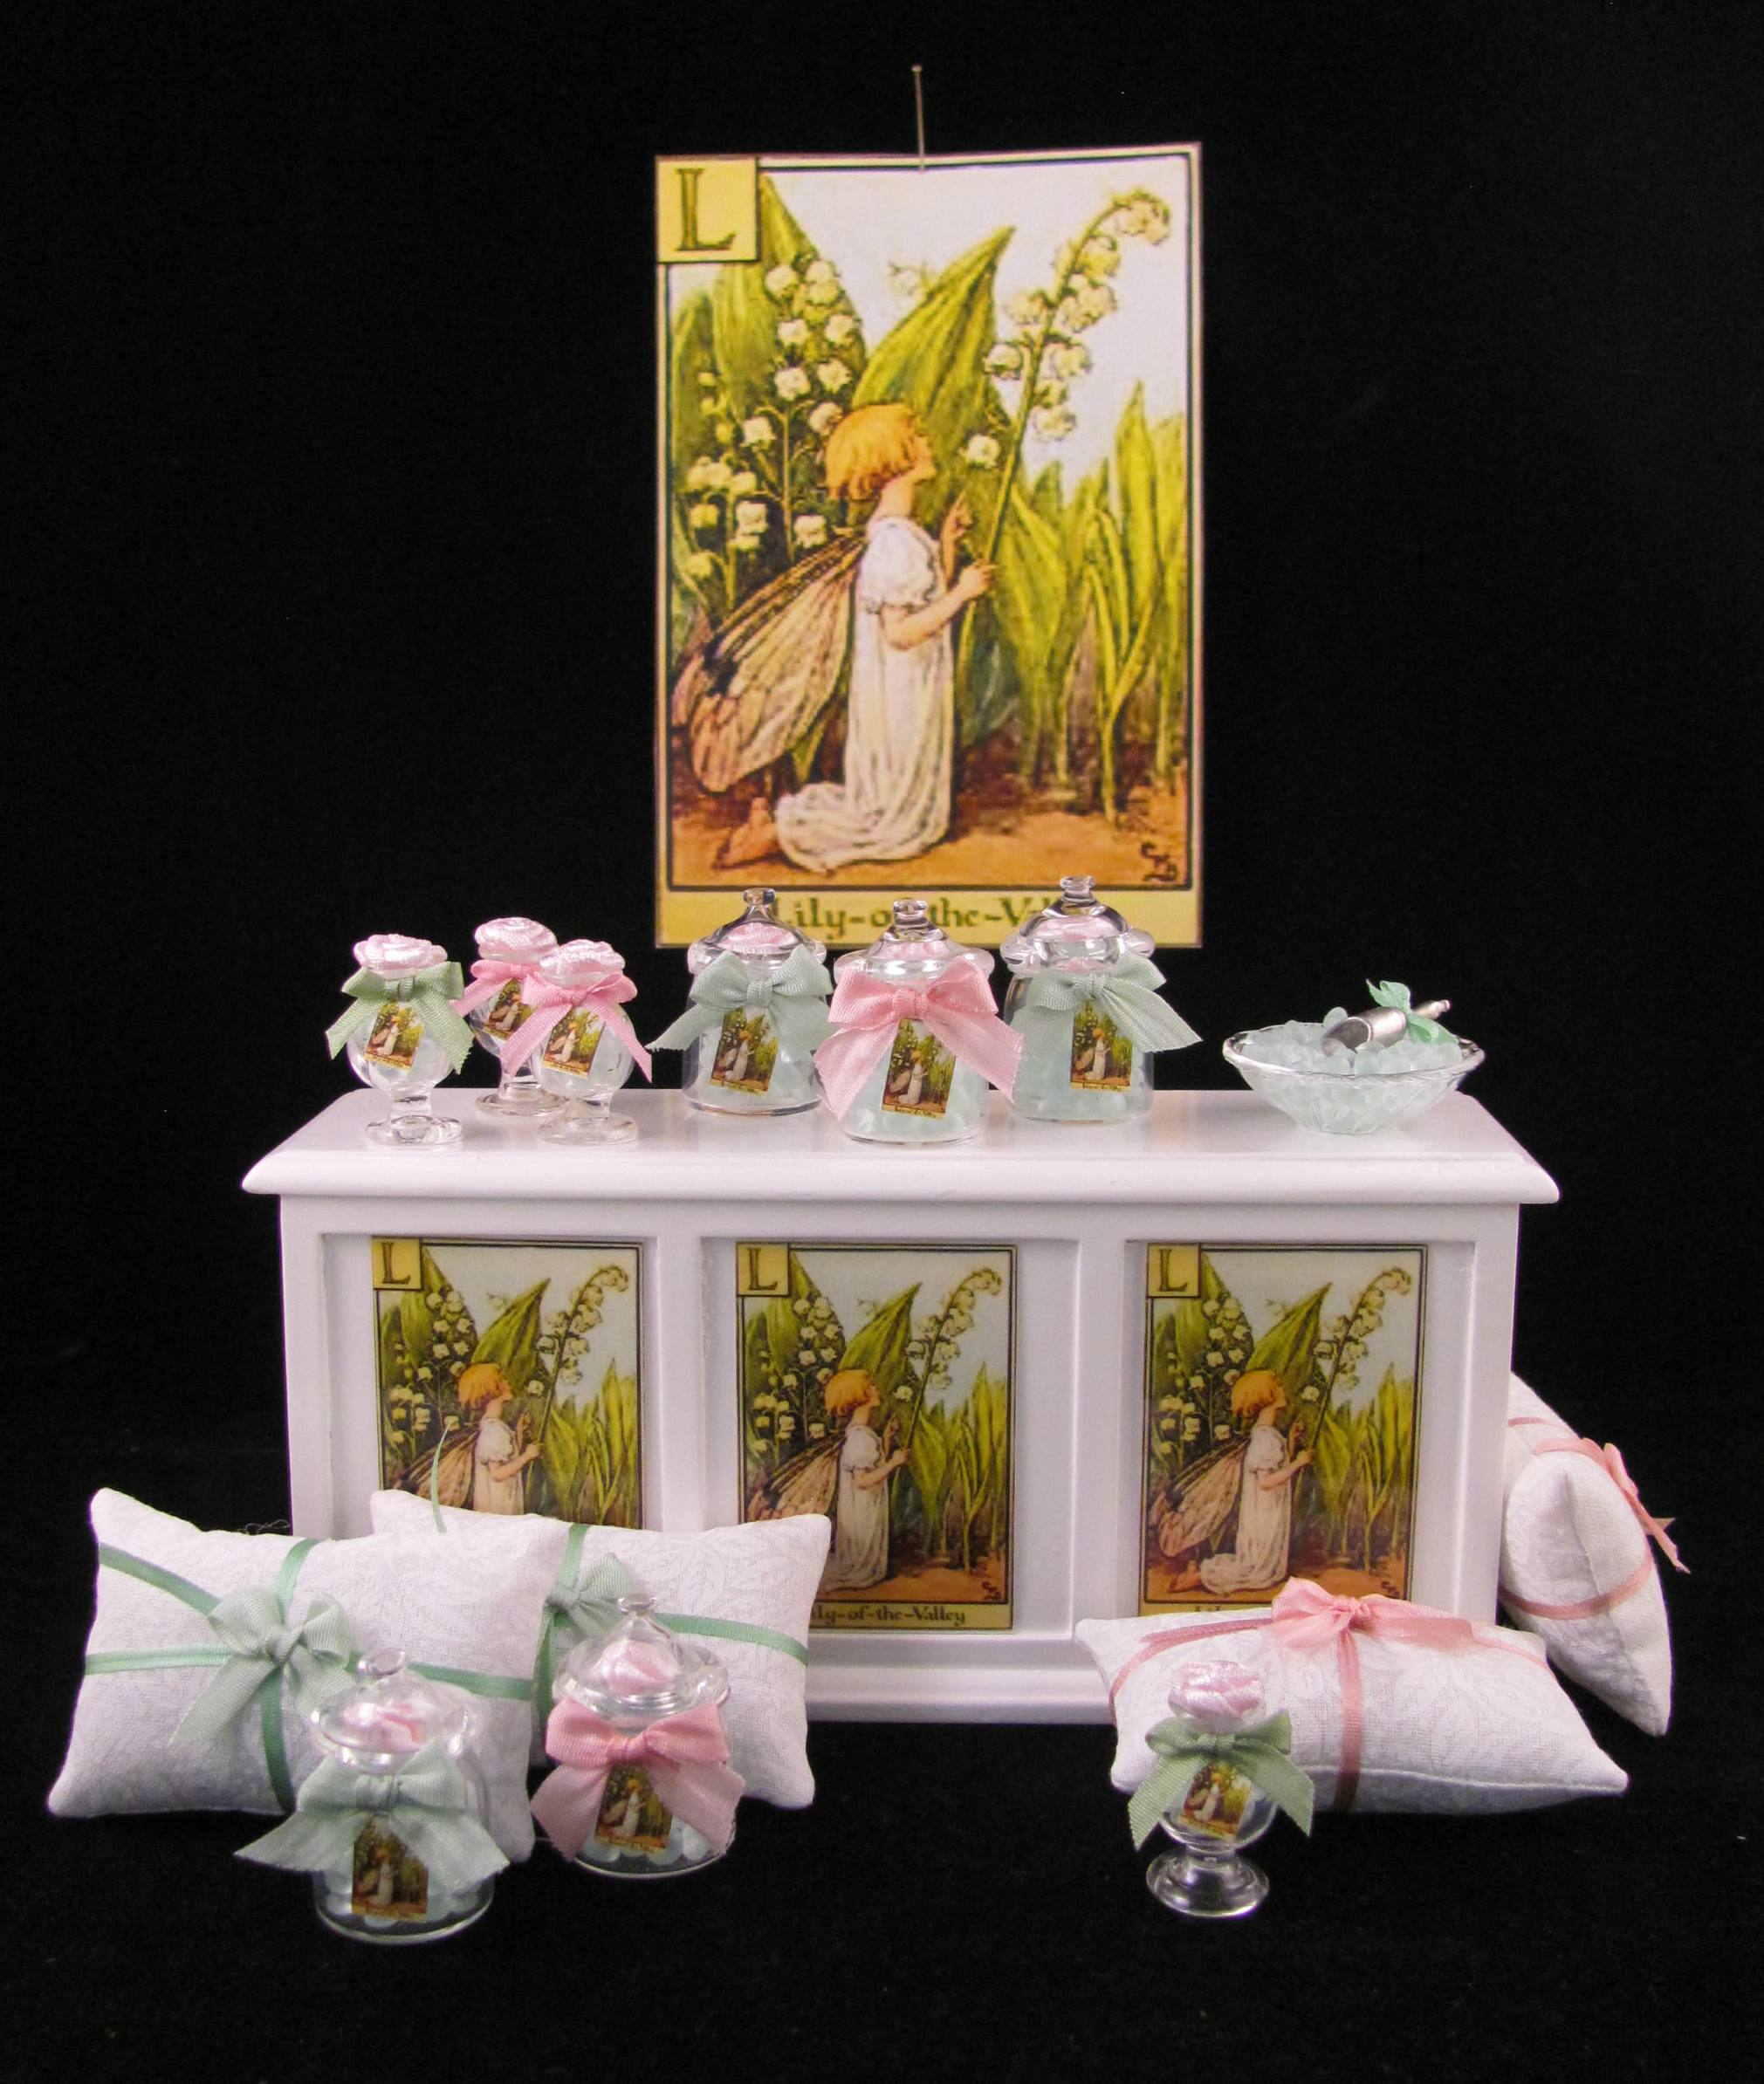 Best Dollhouse Wallpaper Paste: Inspiration : Itsy Bitsy Mini, Wholesale & Retail